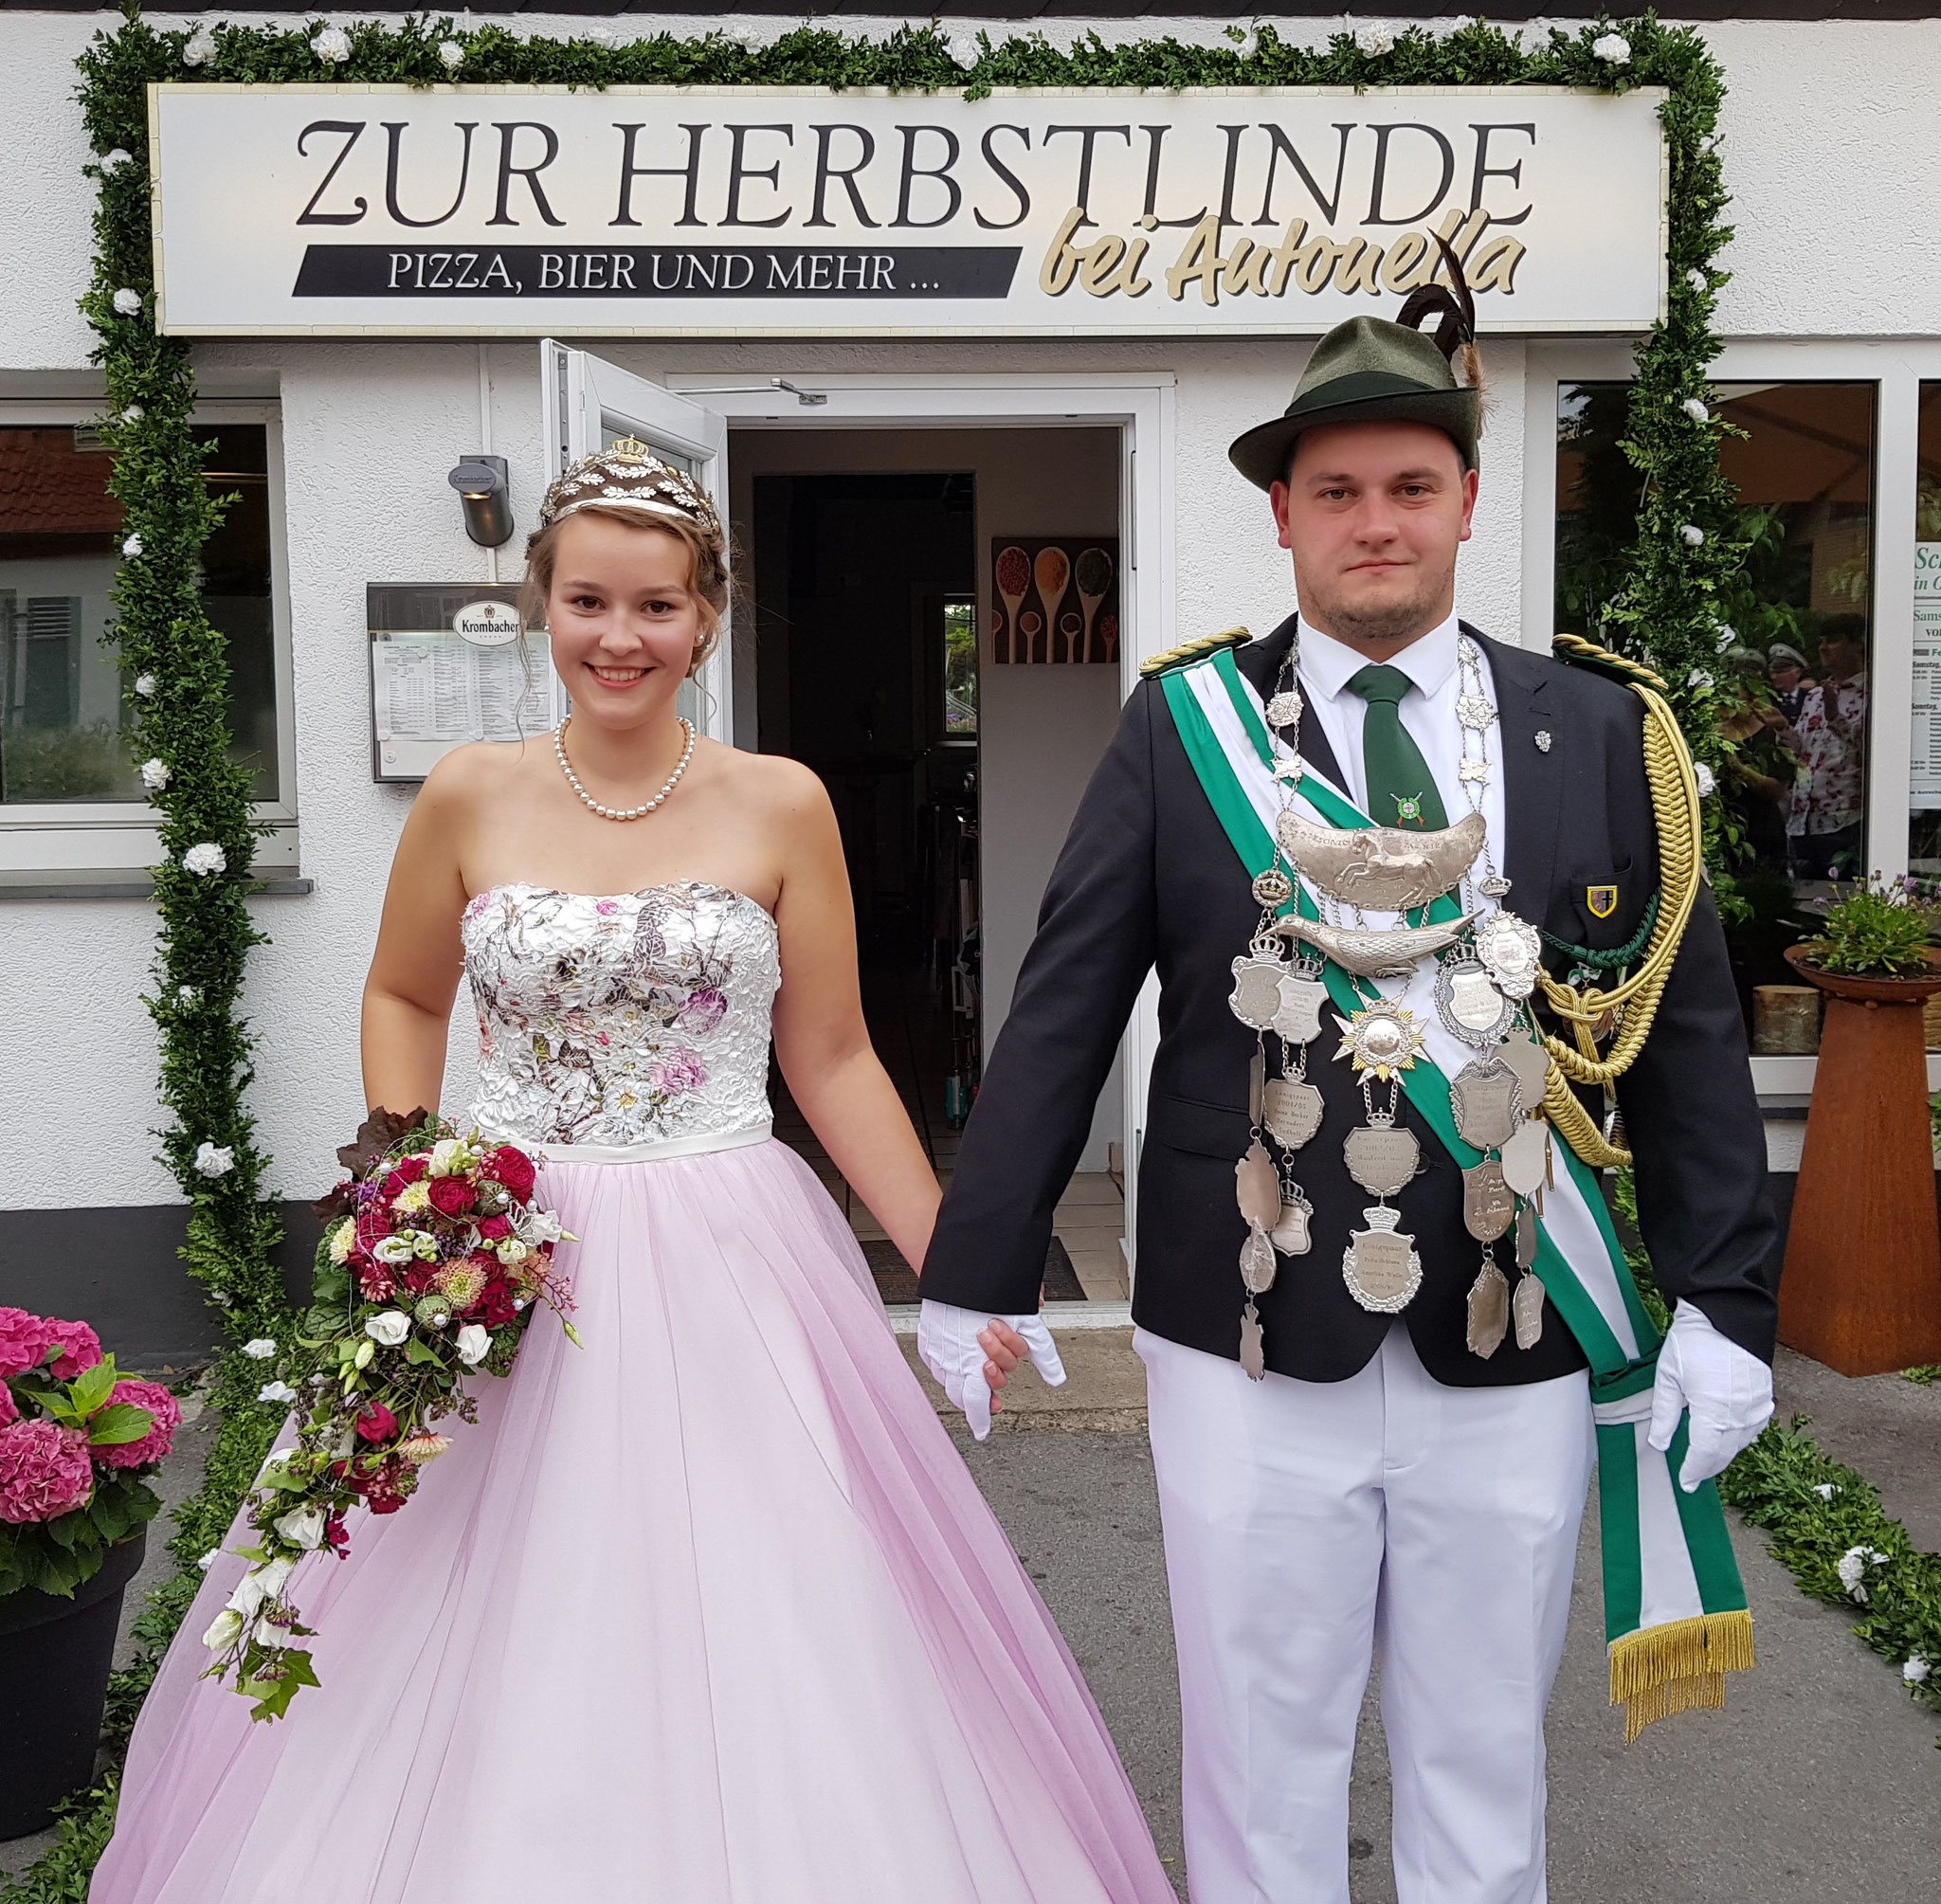 2019  Georg Nübel & Christin Berghoff